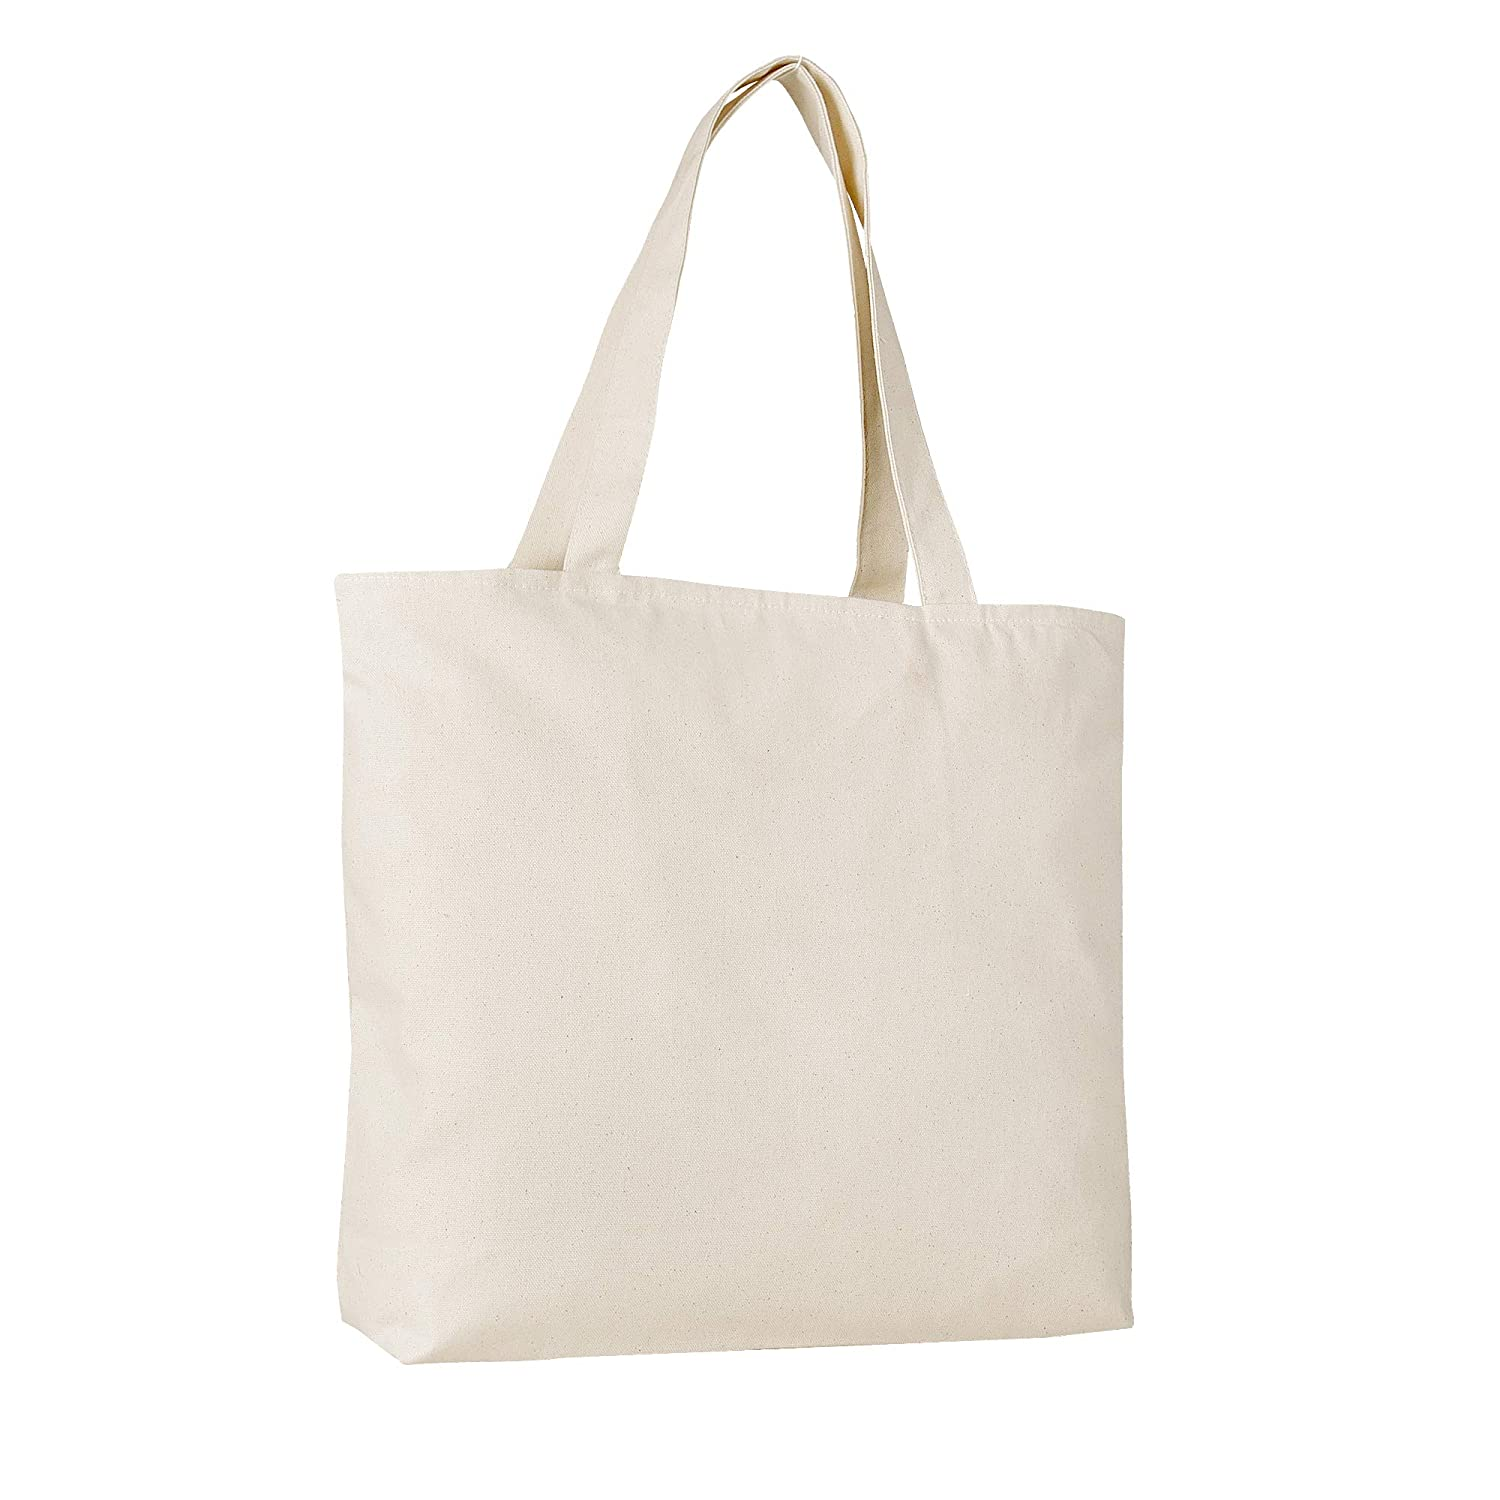 e2b905832acfa Large Durable Canvas Blank Tote Bags Bulk - Grocery Canvas Bags with Zipper  top Zipper Inside Pocket and Long Handles -TG261 (6, Natural)